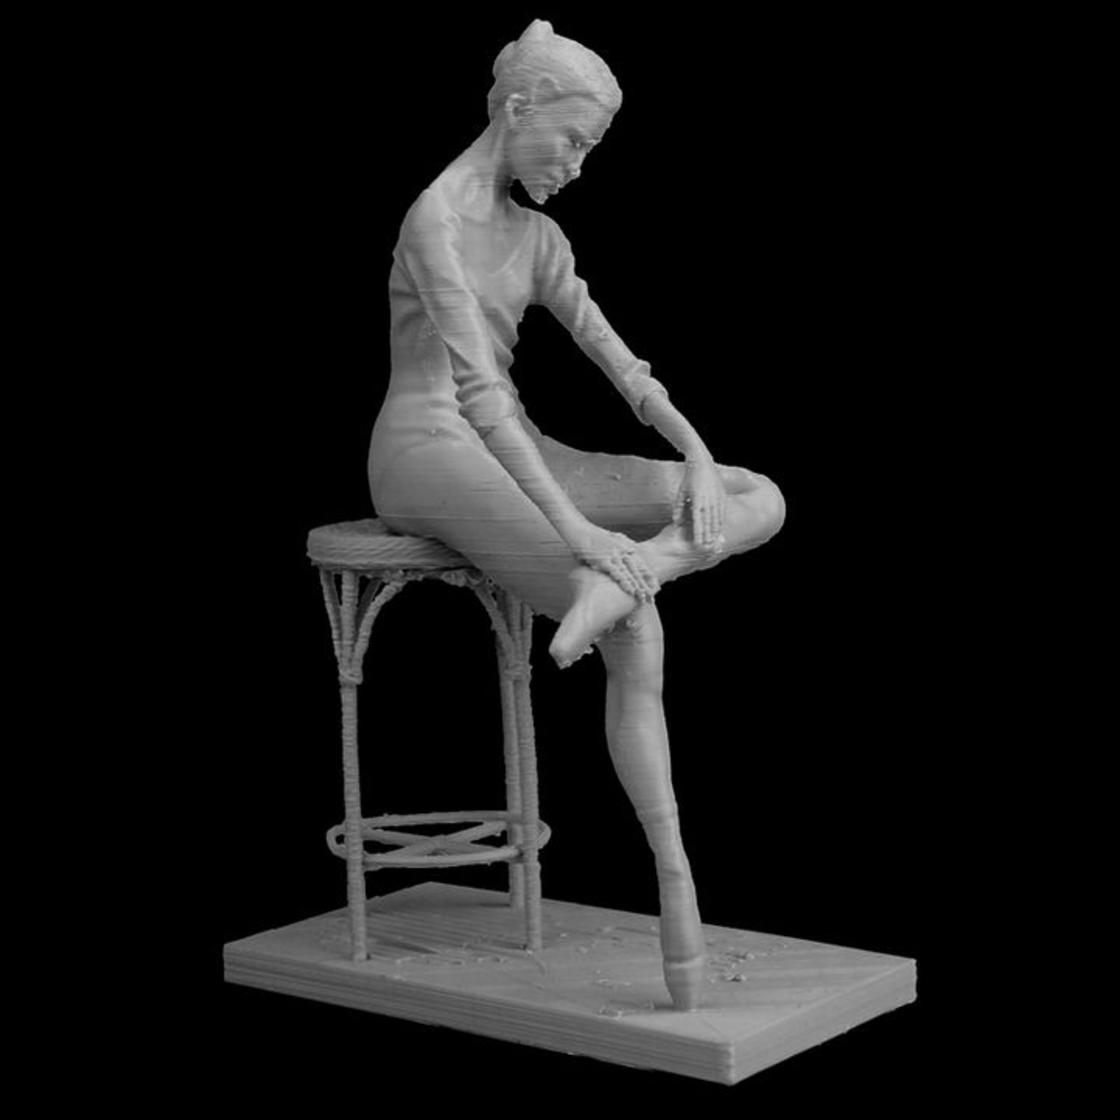 8000 famous sculptures available in 3D for your 3D printer!